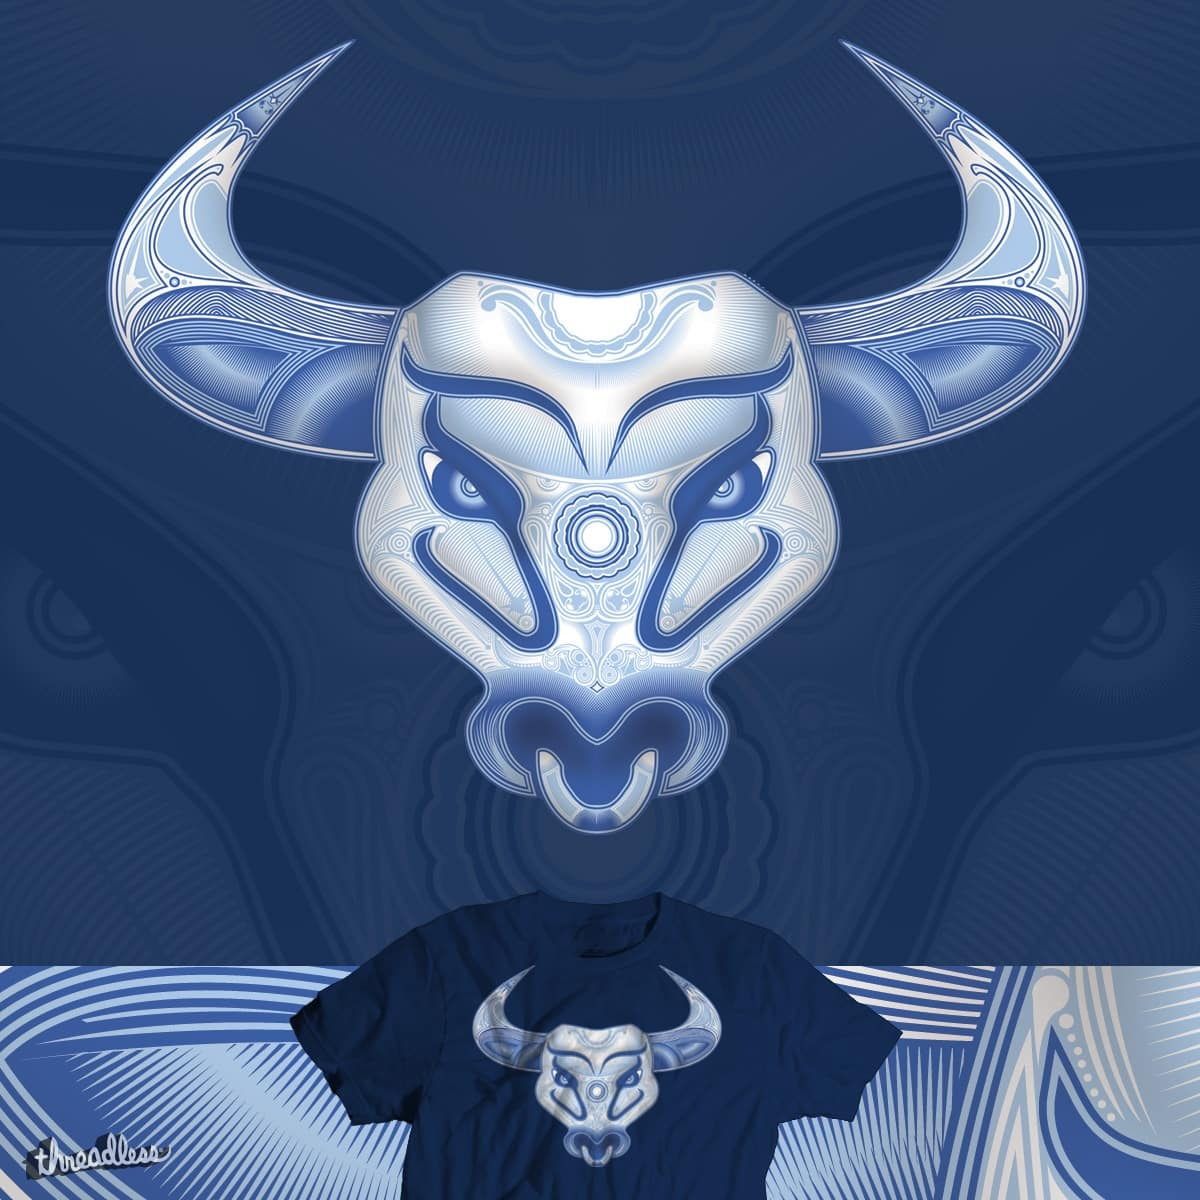 China Bull by Papaprime on Threadless